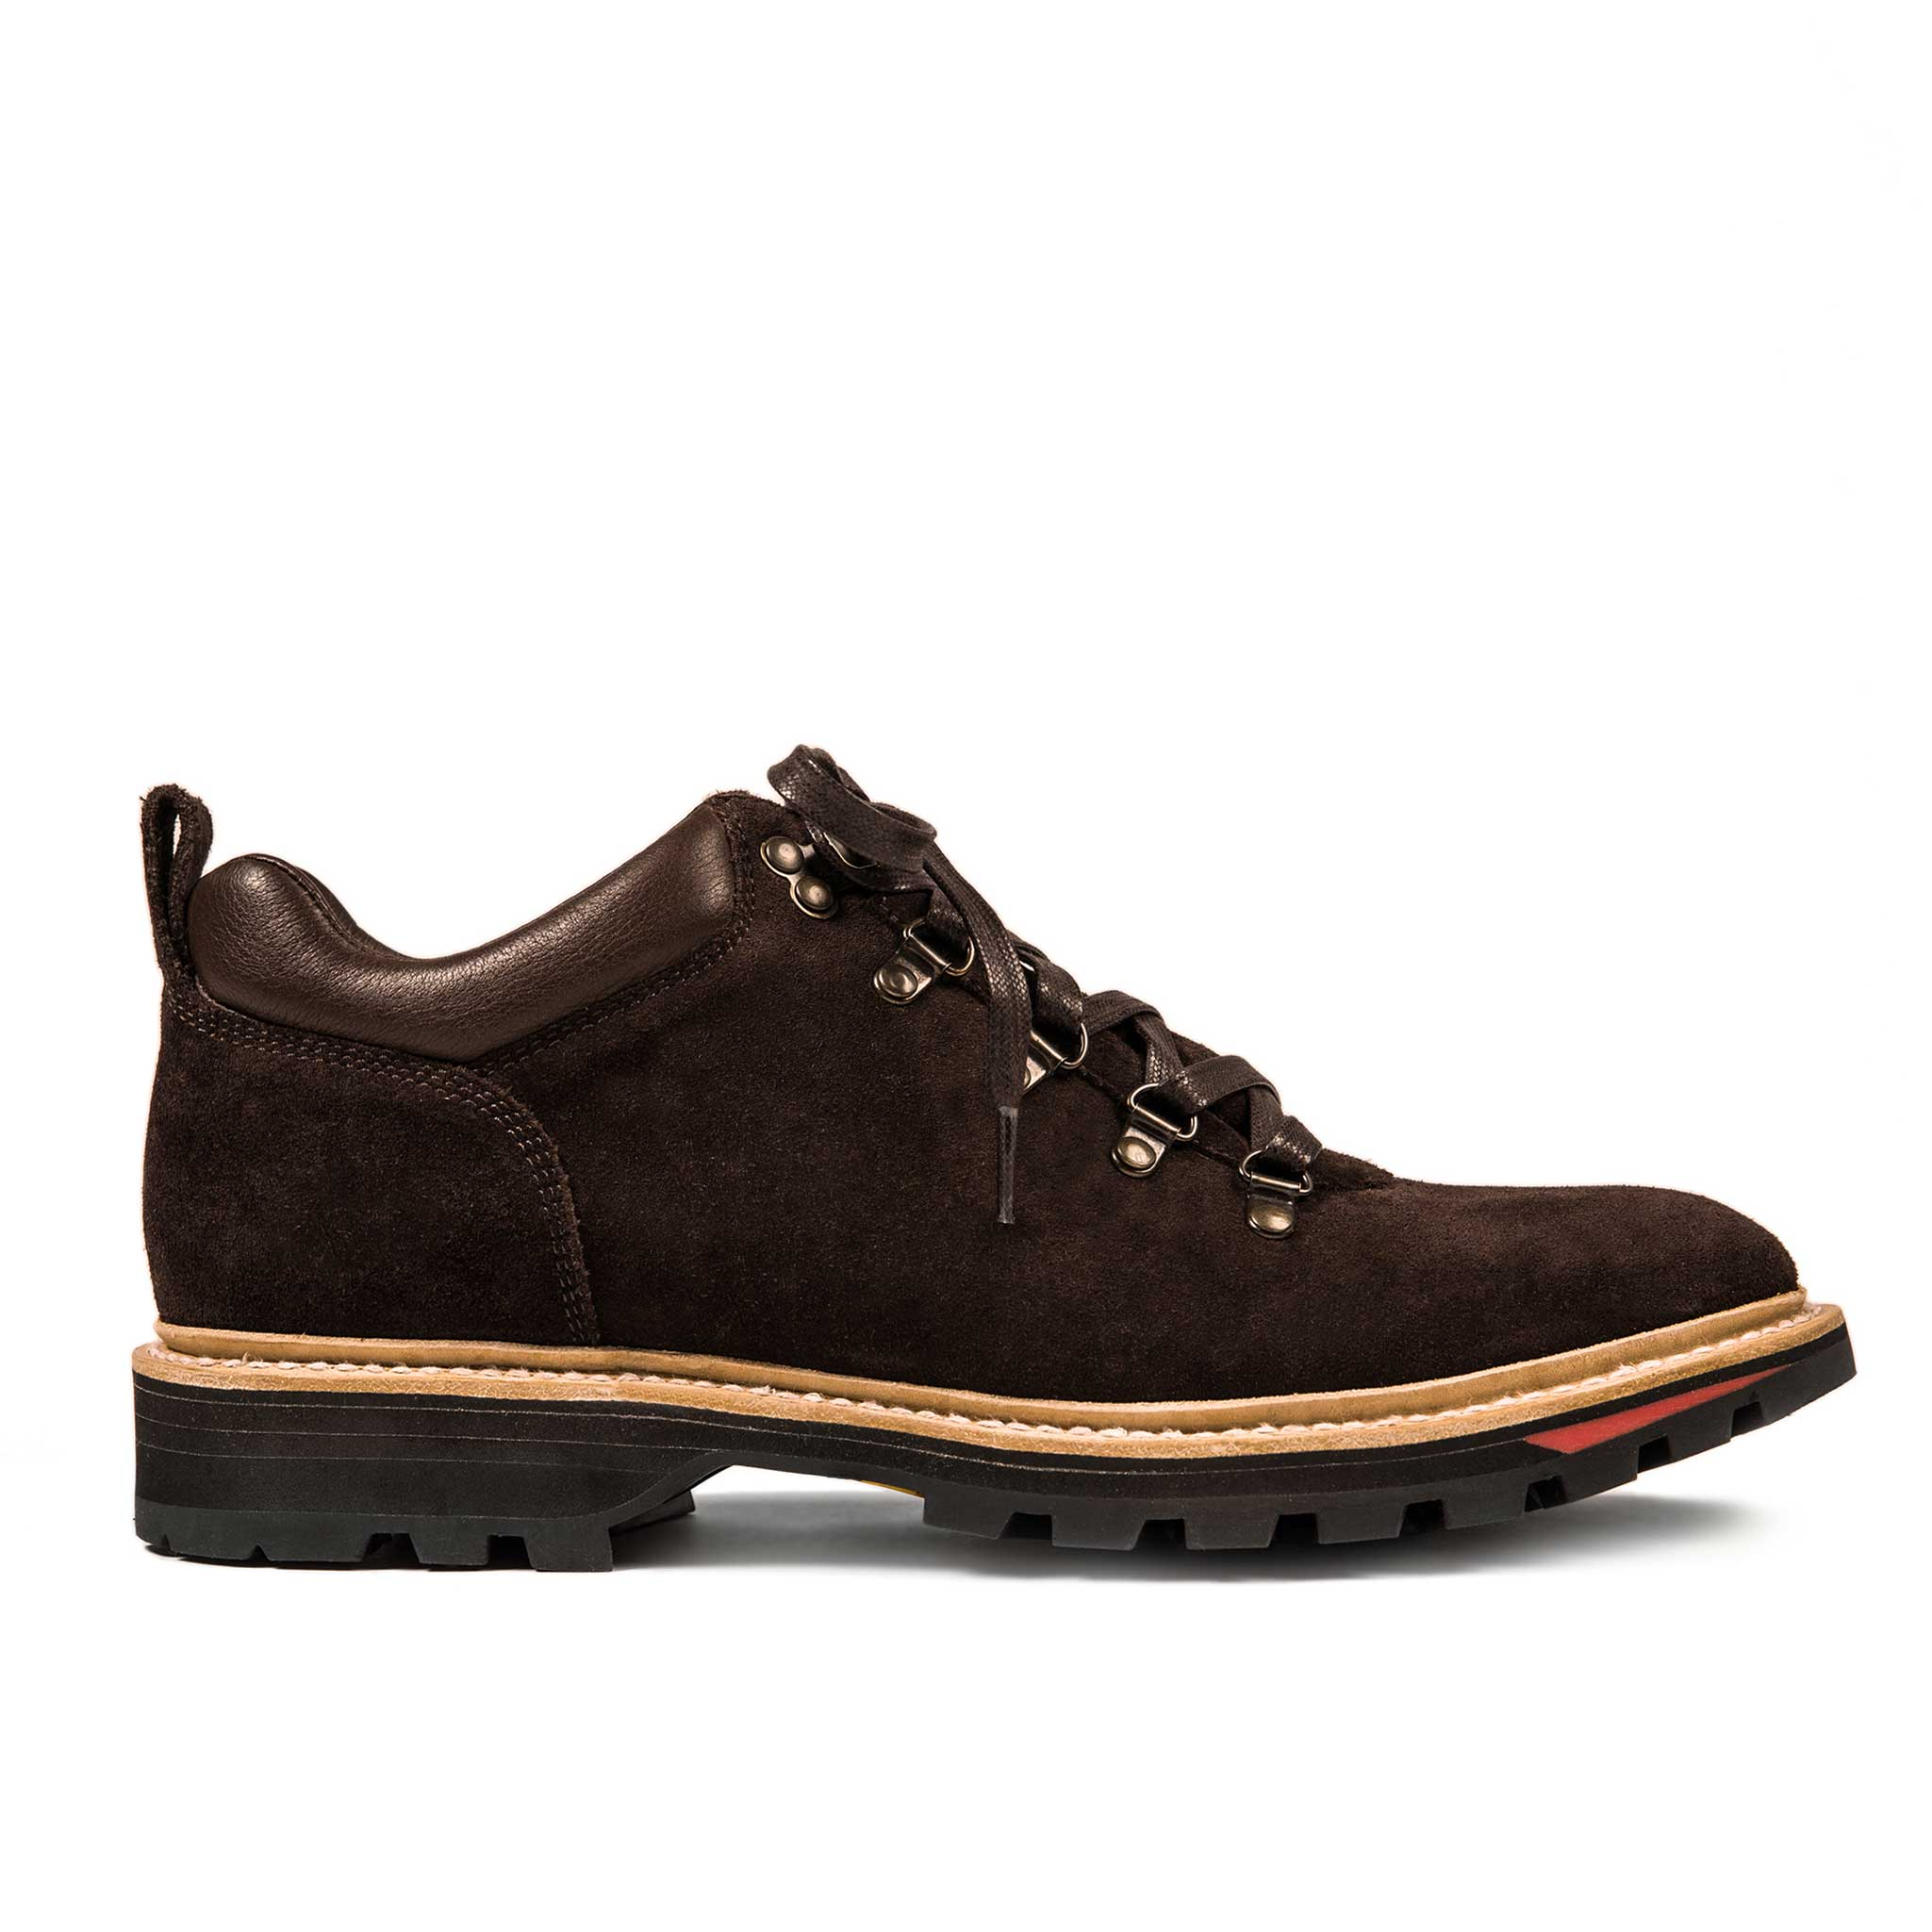 Image of THE HIKER <br>IN CHOCOLATE SUEDE